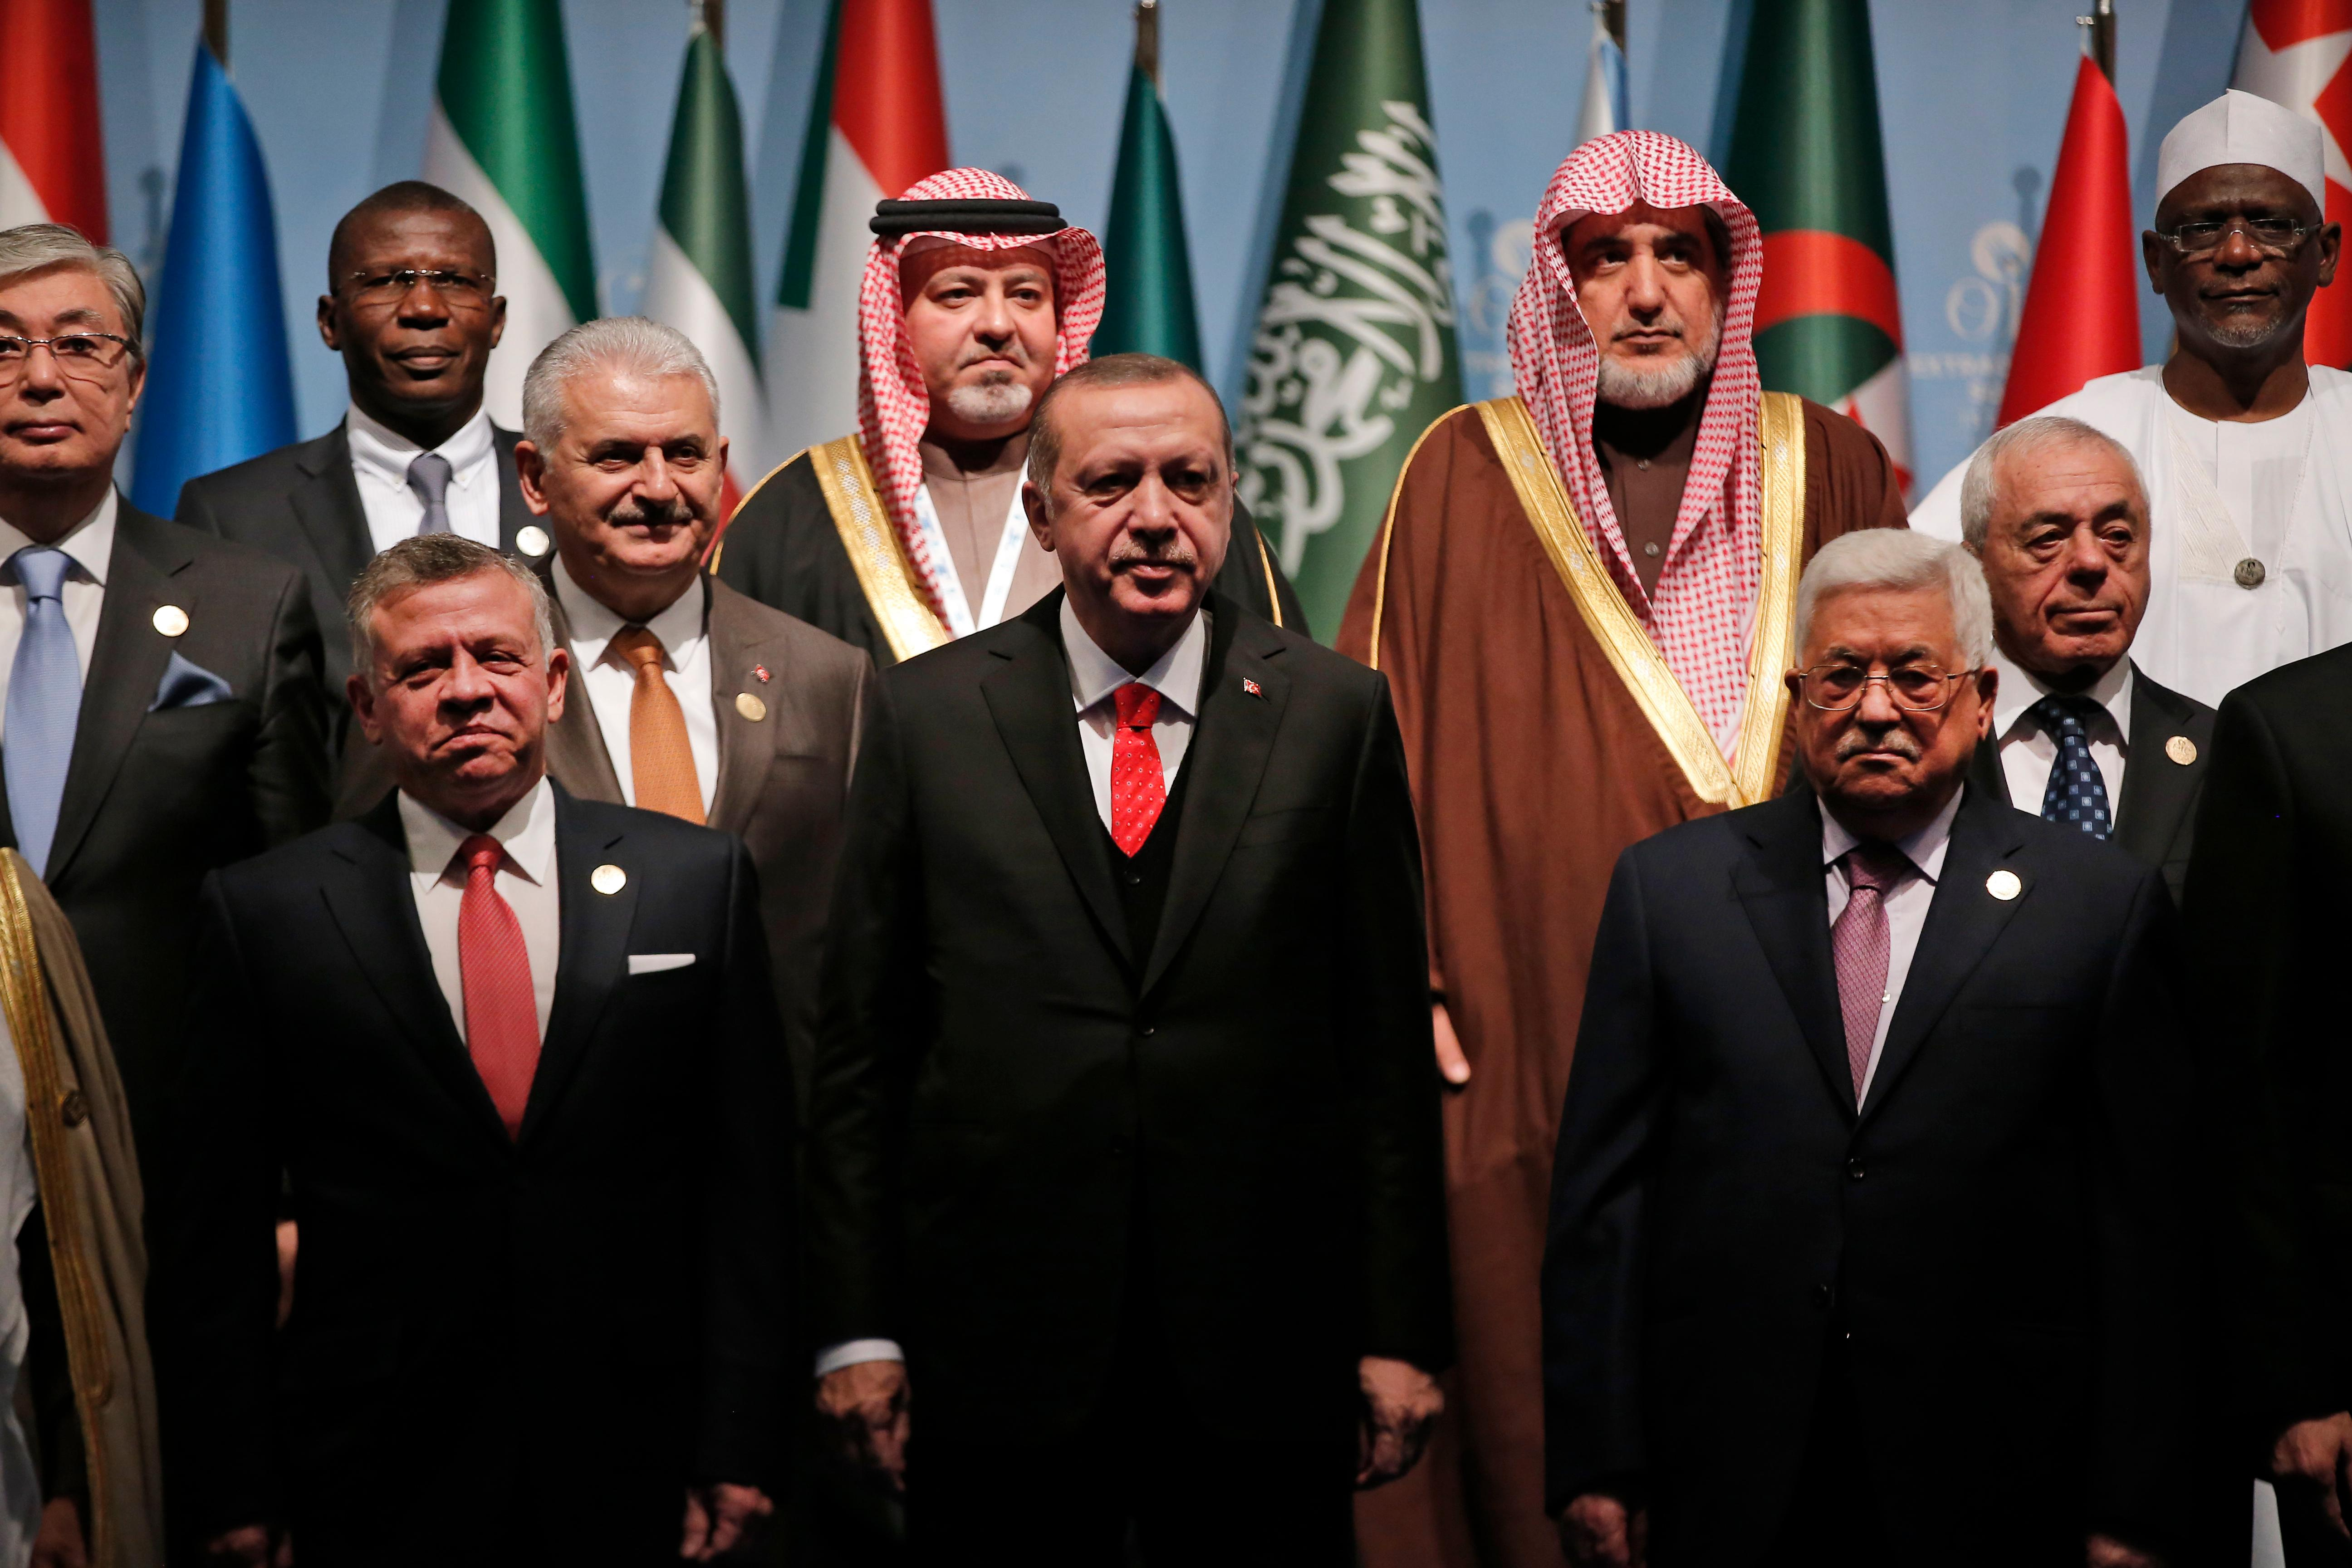 "Turkey's President Recep Tayyip Erdogan, centre, Funked by Jordan's King Abdullah II, left and Palestinian President Mahmoud Abbas, right, poses for photographs wth other leaders during a photo-op prior to the opening session of the Organisation of Islamic Cooperation in Istanbul, Wednesday, Dec. 13, 2017. Leaders and high-ranking officials of Muslim countries met in Istanbul to discuss the U.S. recognition of Jerusalem as Israel's capital. Erdogan_ term president of OIC, the umbrella organisation of 57-members, has been vehemently critical of the U.S. move and said the leaders would relay a ""strong message."" (AP Photo/Lefteris Pitarakis)"